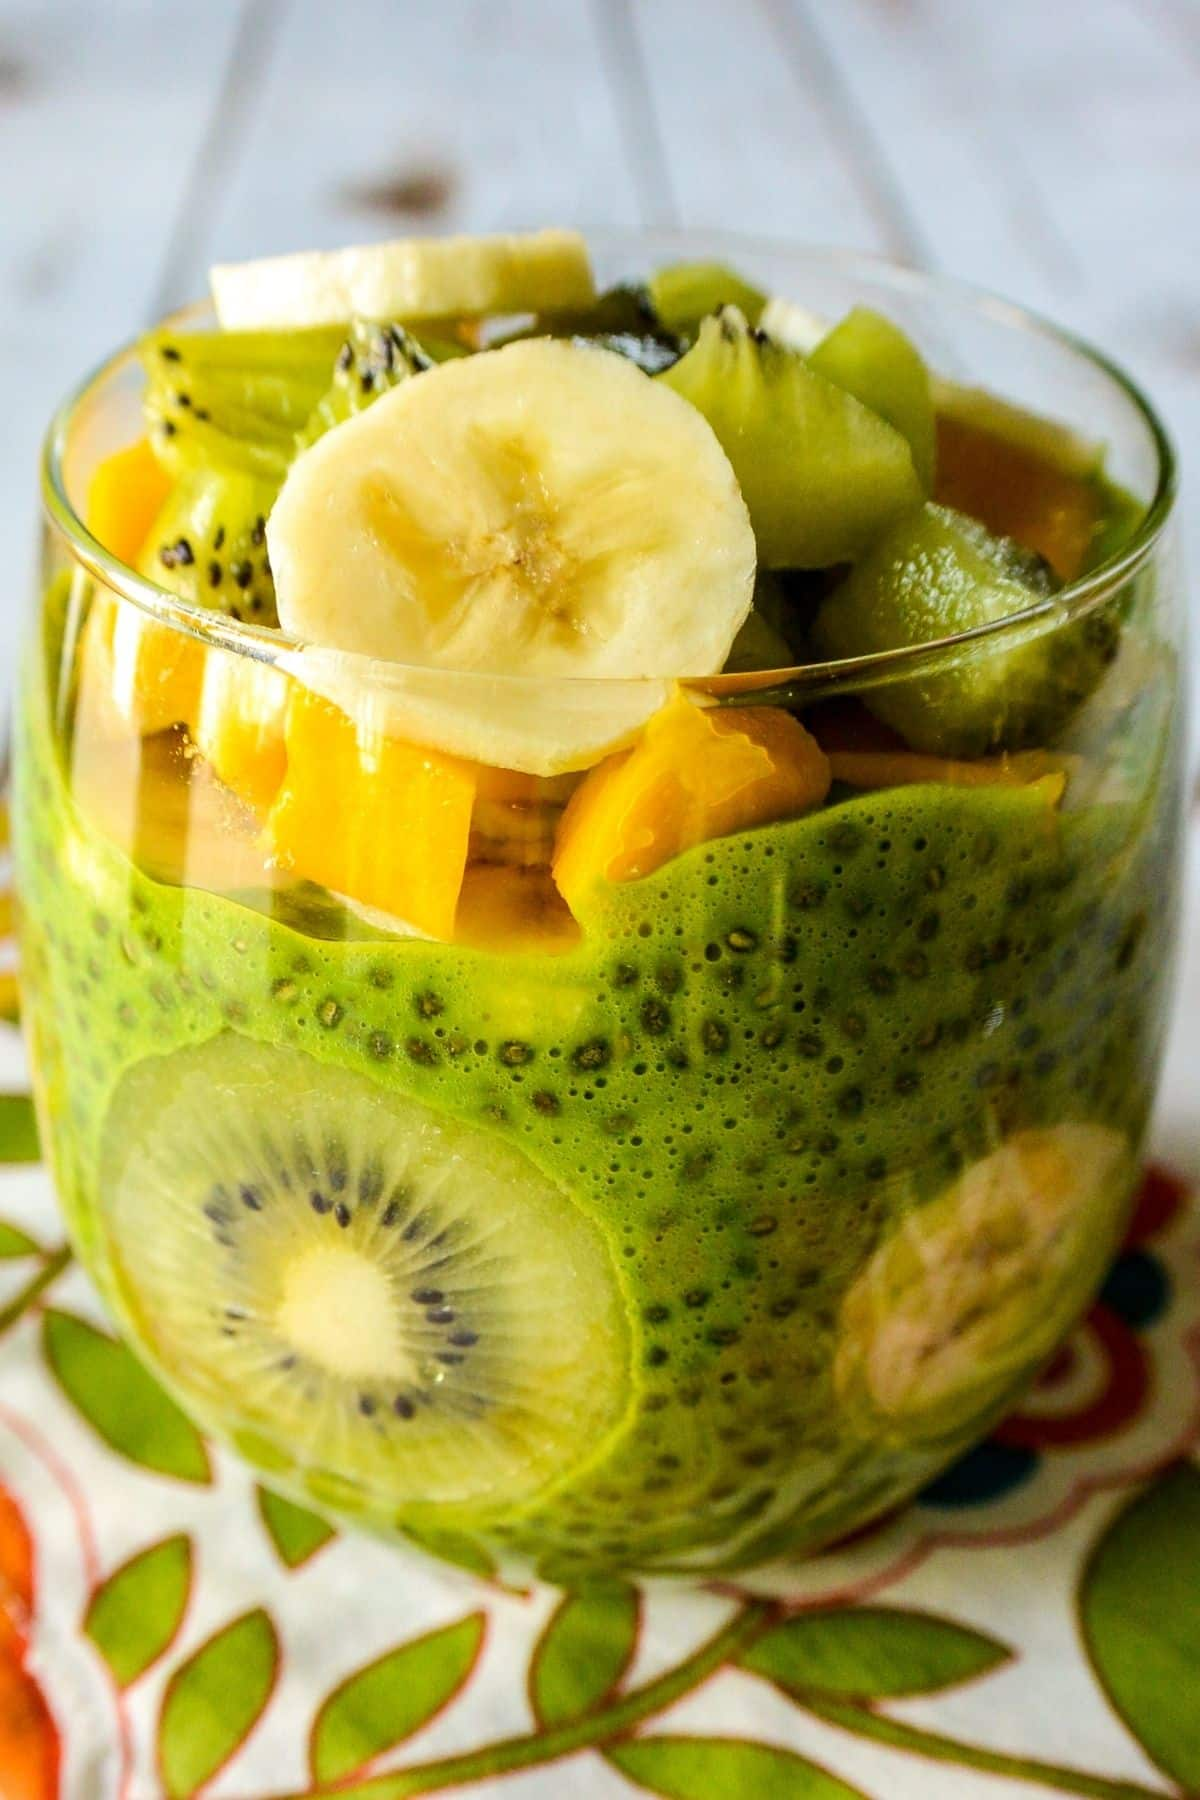 Green chia seed pudding in a clear glass layered and topped with sliced kiwi, mango, and banana